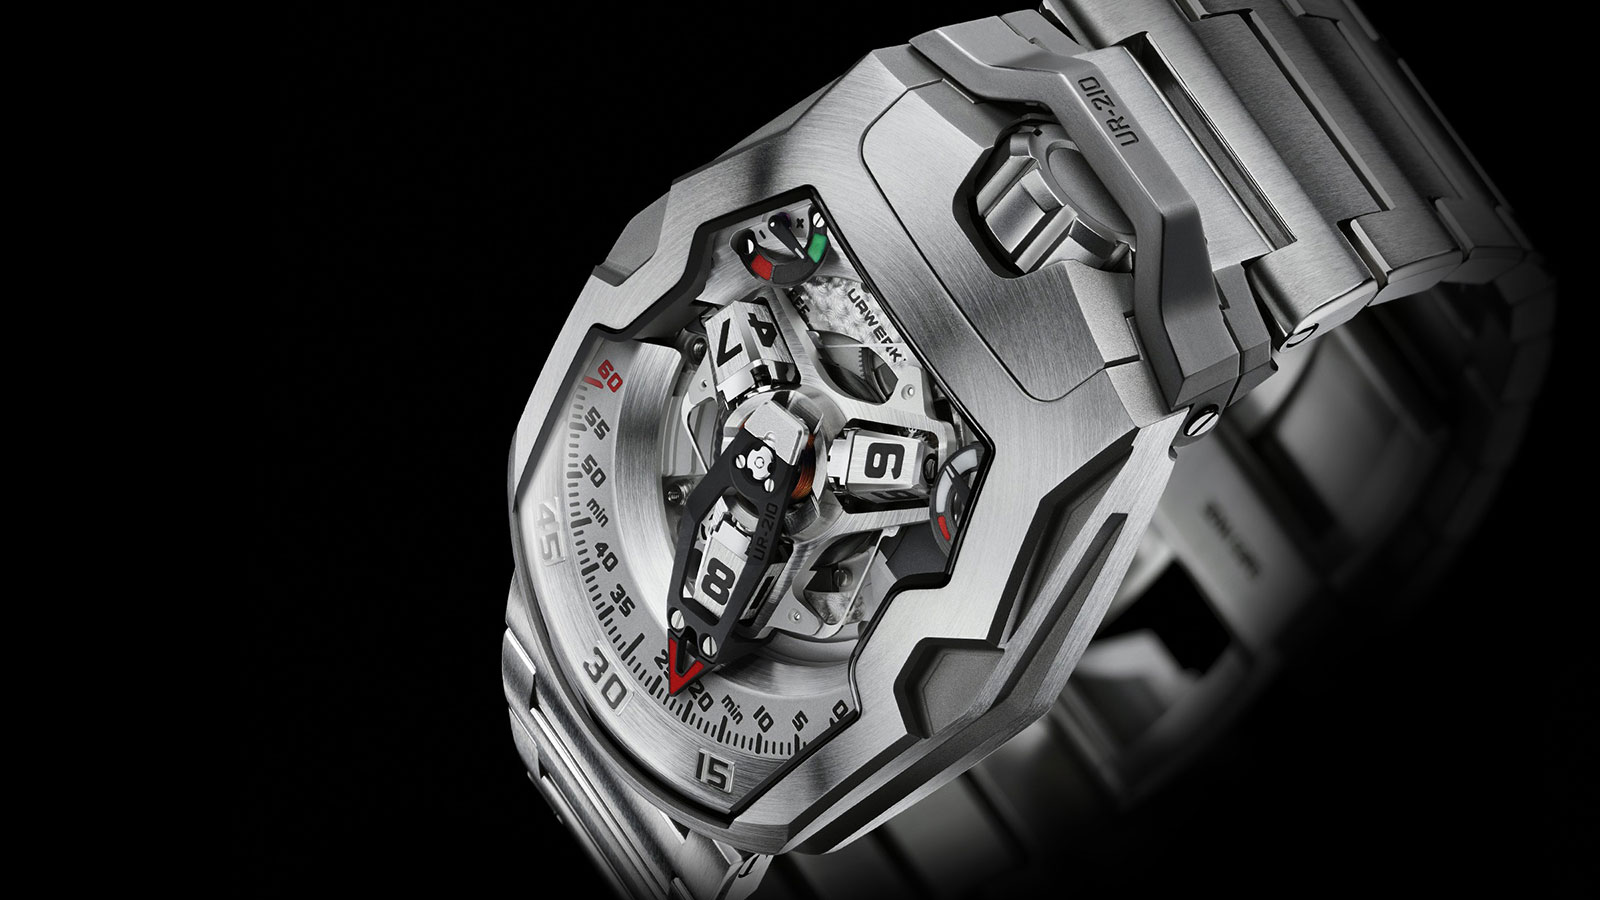 Urwerk UR-210 Men's Watch | futuristic watches for men